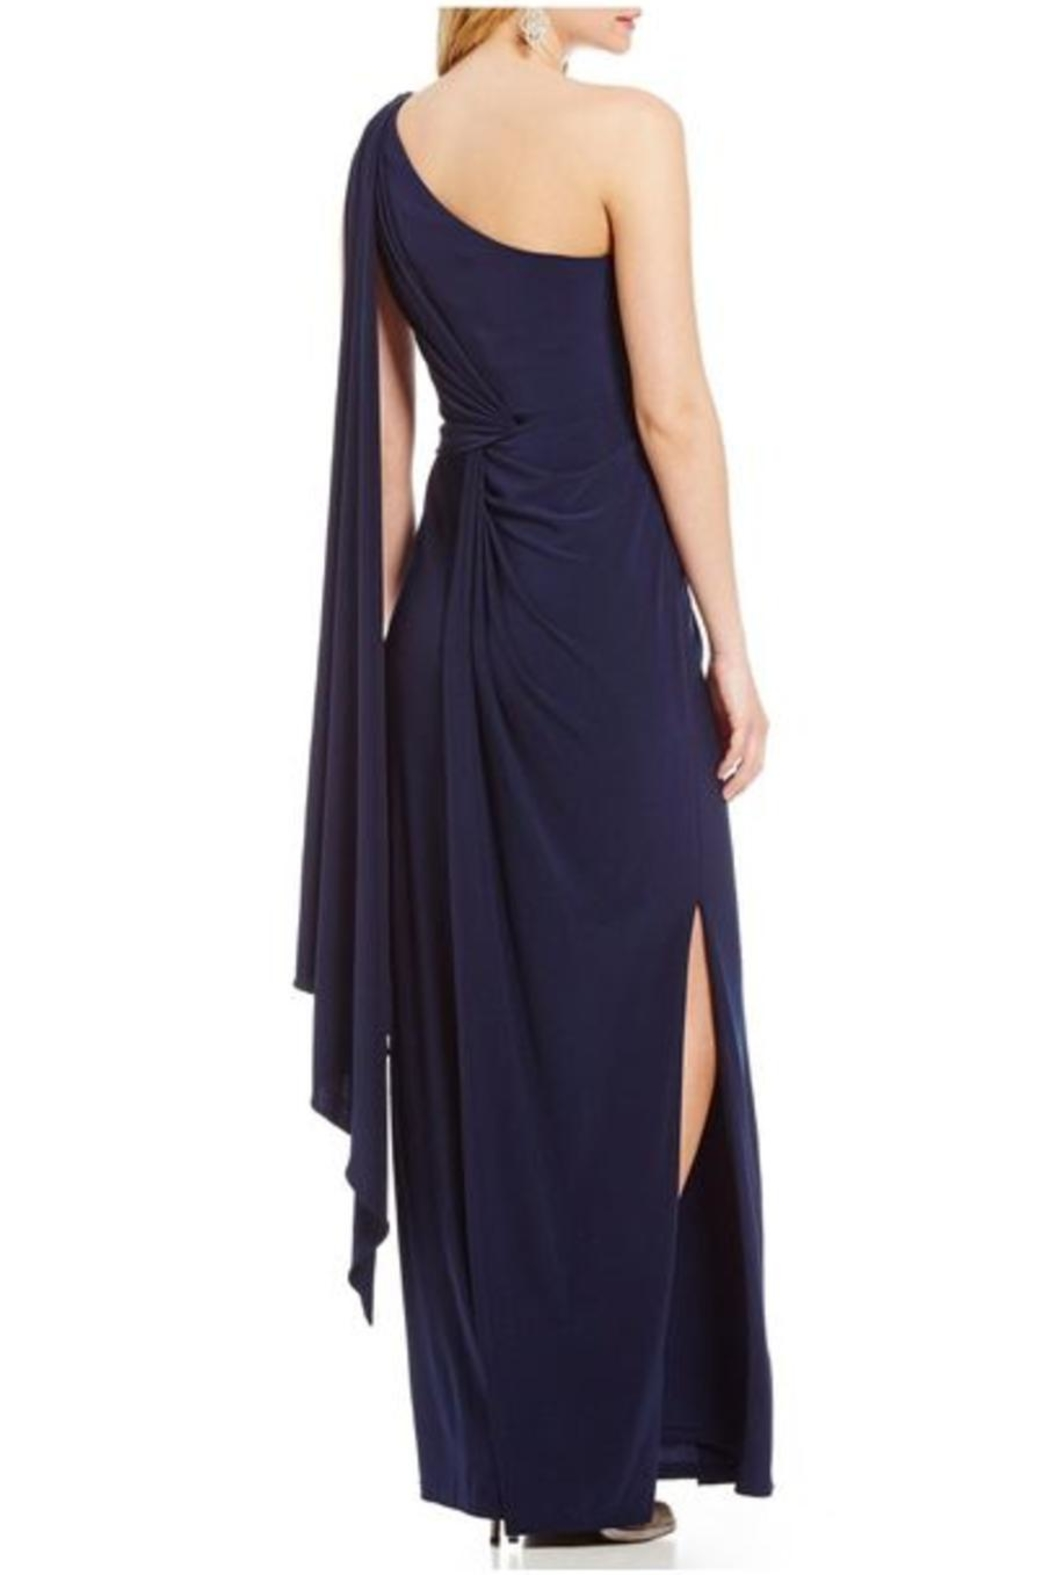 Adrianna Papell One-Shoulder Draped Gown - Front Full Image